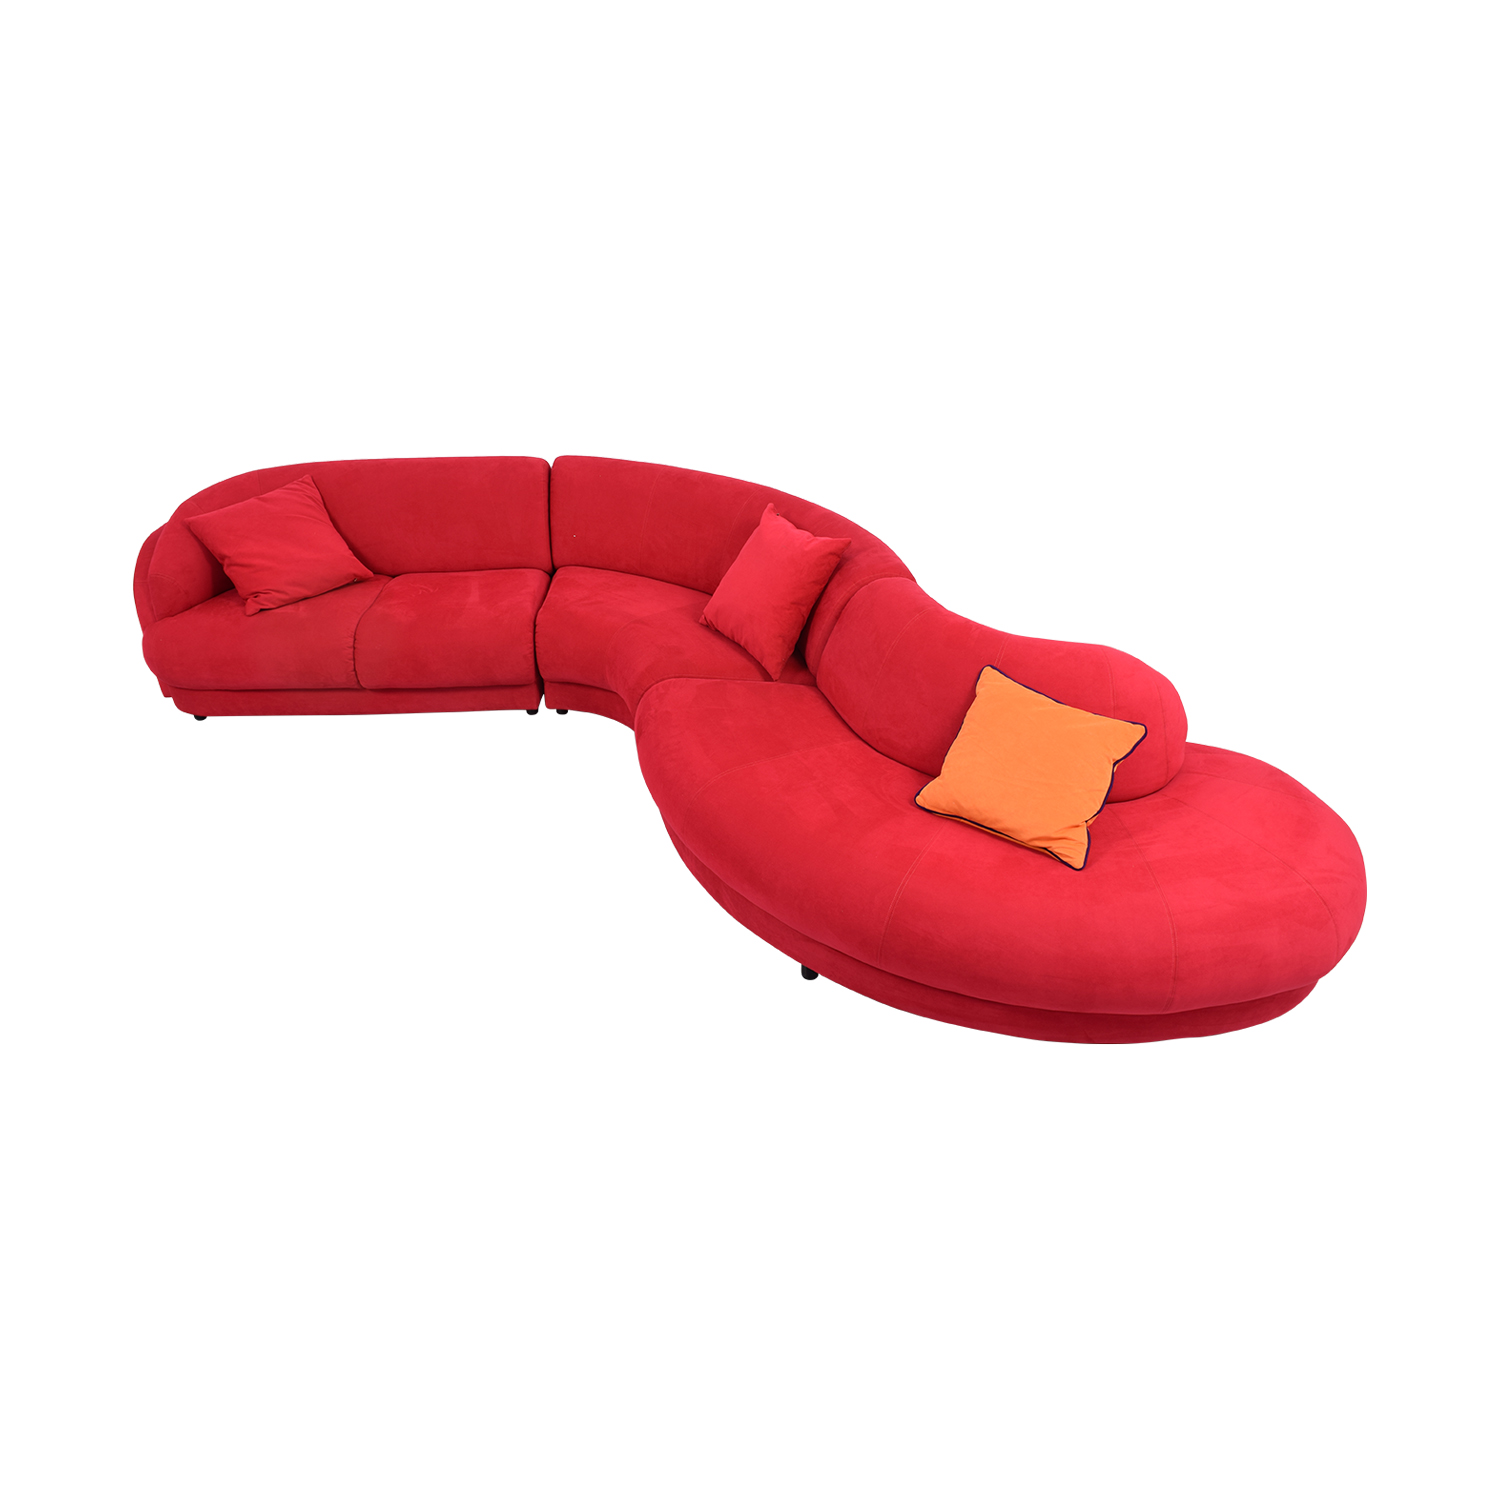 Bright Red Curved Sectional with Pillows nyc